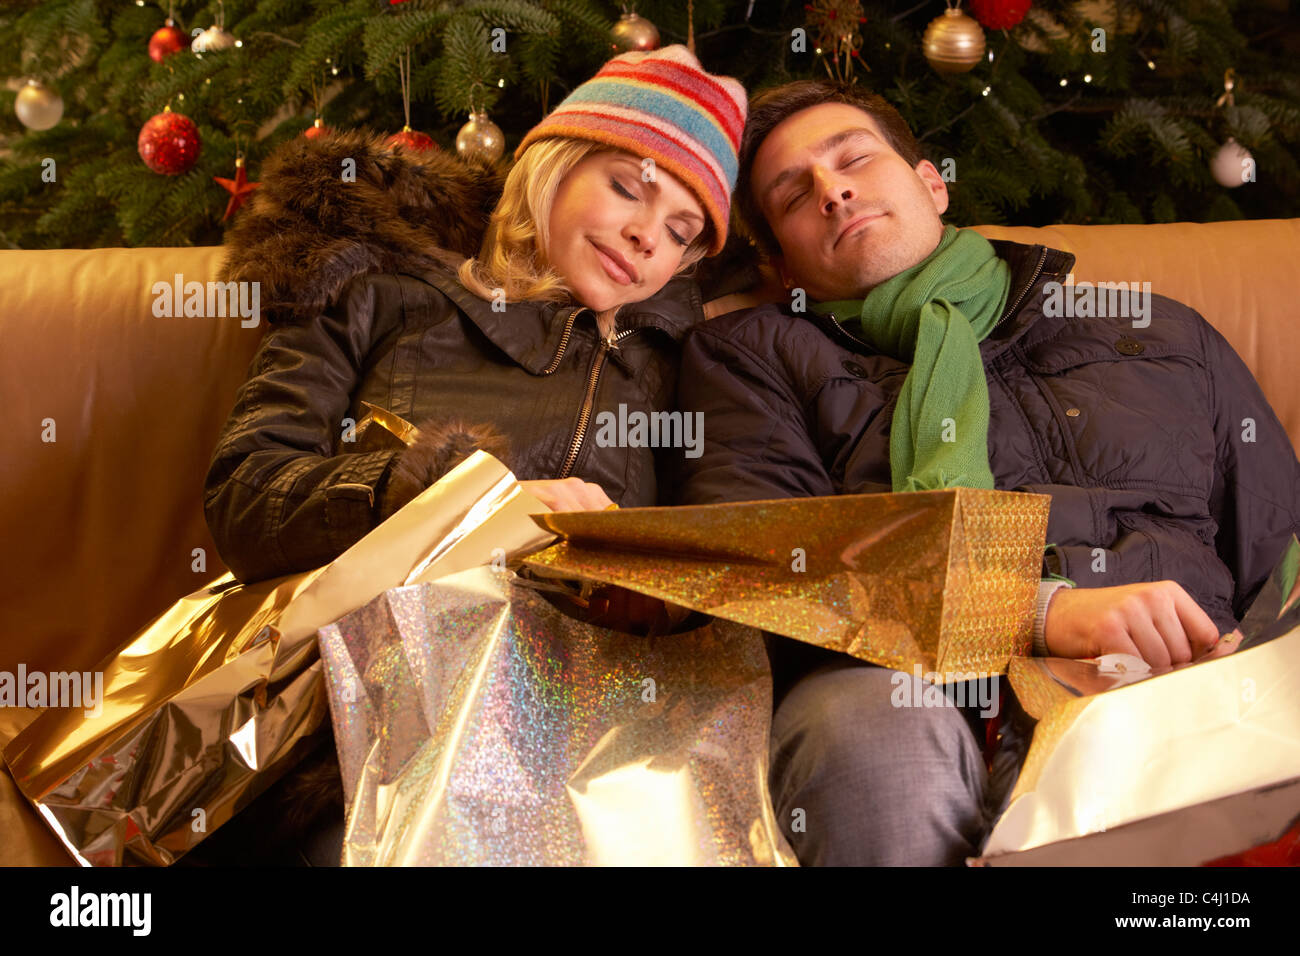 Tired Couple Returning After Christmas Shopping Trip Stock Photo